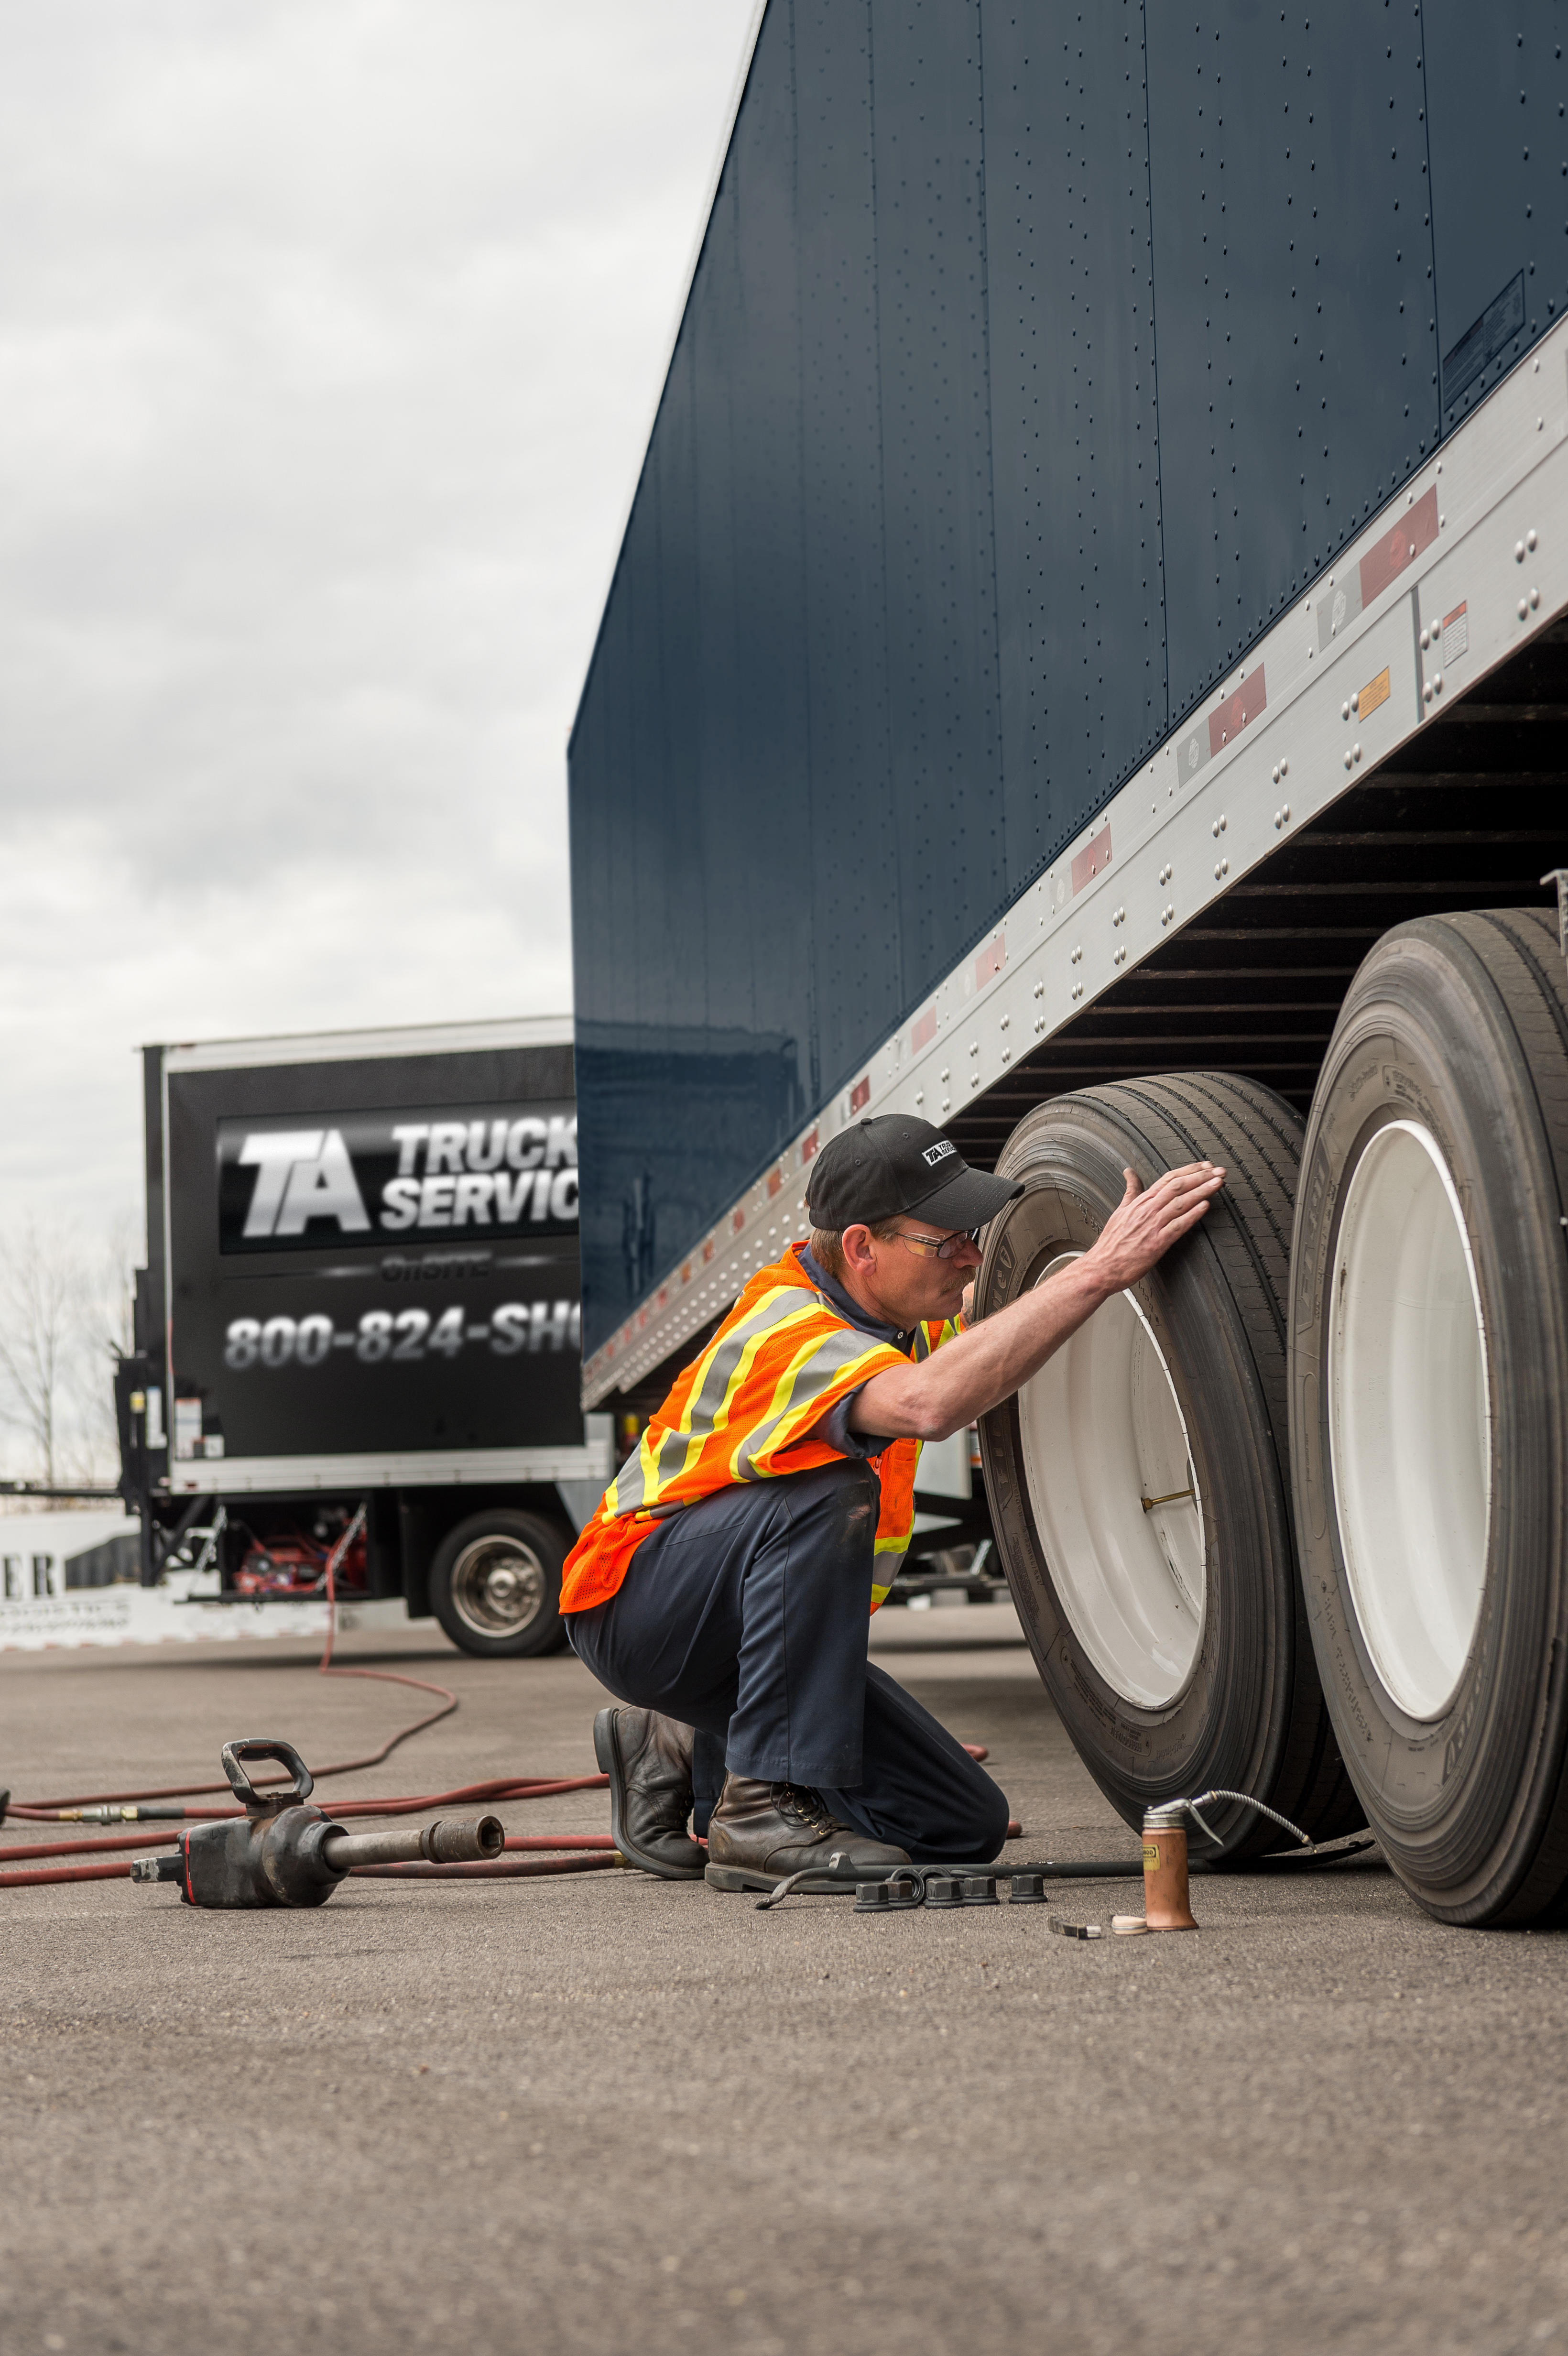 TA Truck Service TechOn-SITE makes managing your fleet's maintenance and repairs easy, by bringing MORE: Solutions right to the tractors and trailers staged at your lot or distribution center.